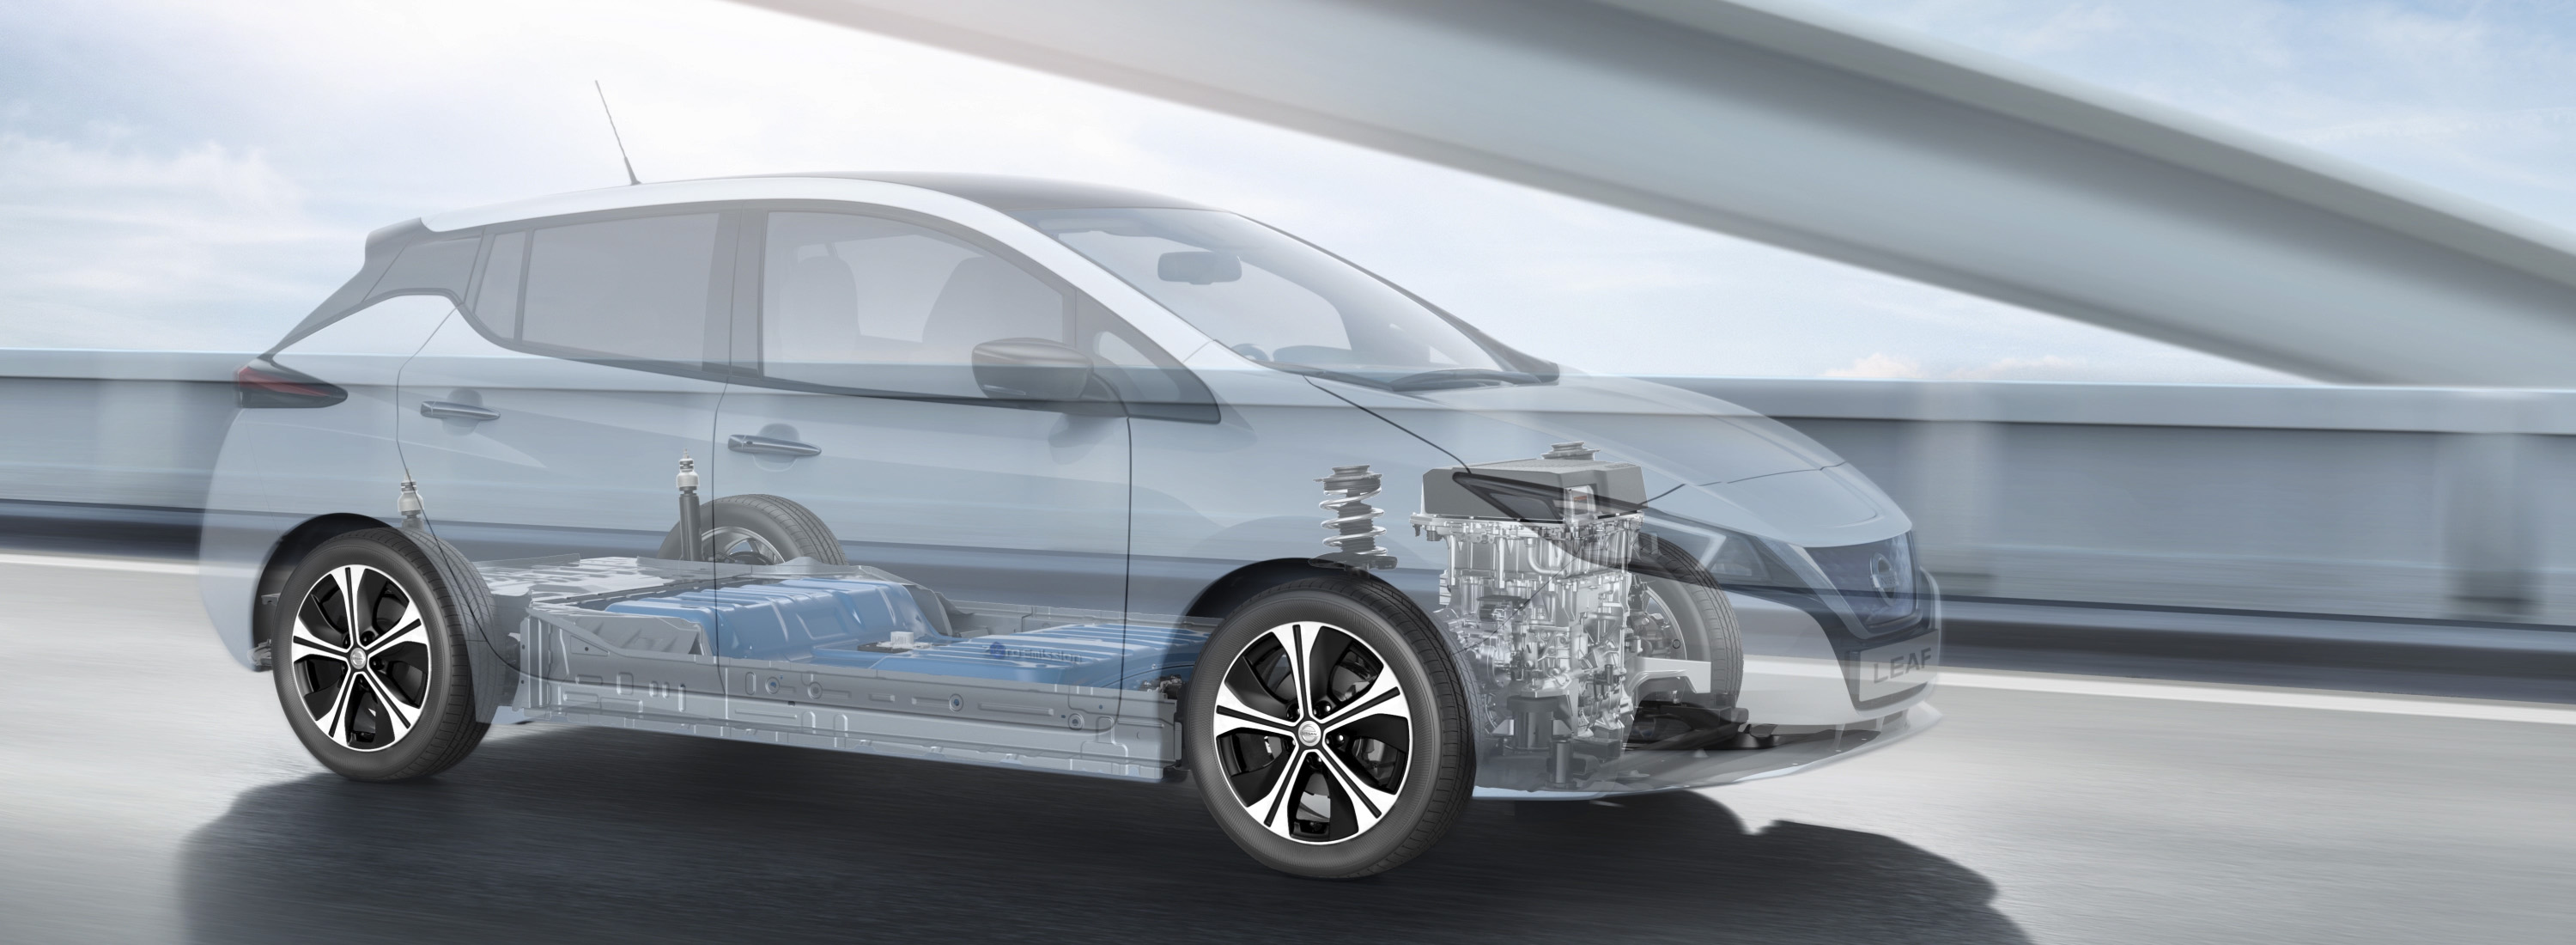 New Nissan LEAF x-ray view showing battery and motor